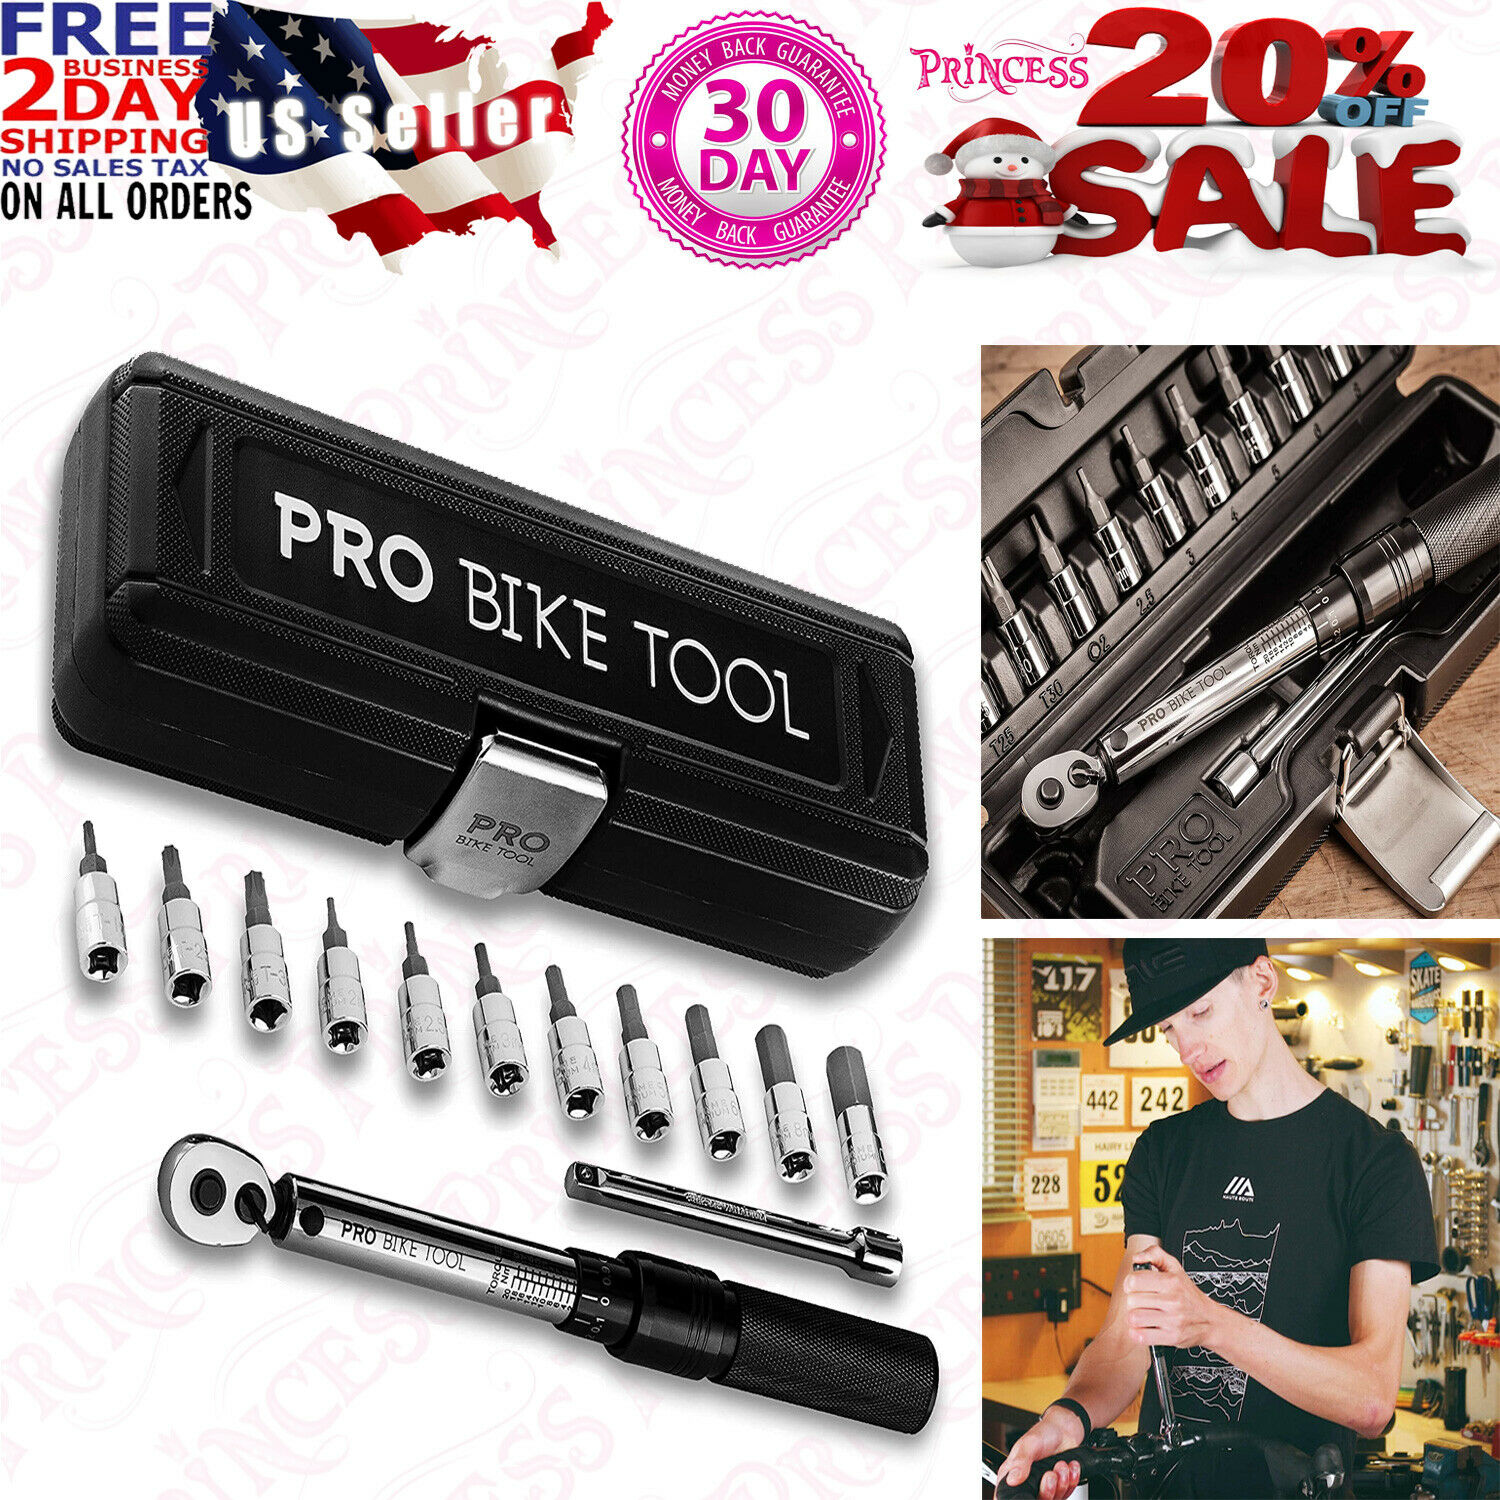 Bicycle 2 to 20 Nm PRO BIKE TOOL 1//4 Inch Drive Click Torque Wrench Set